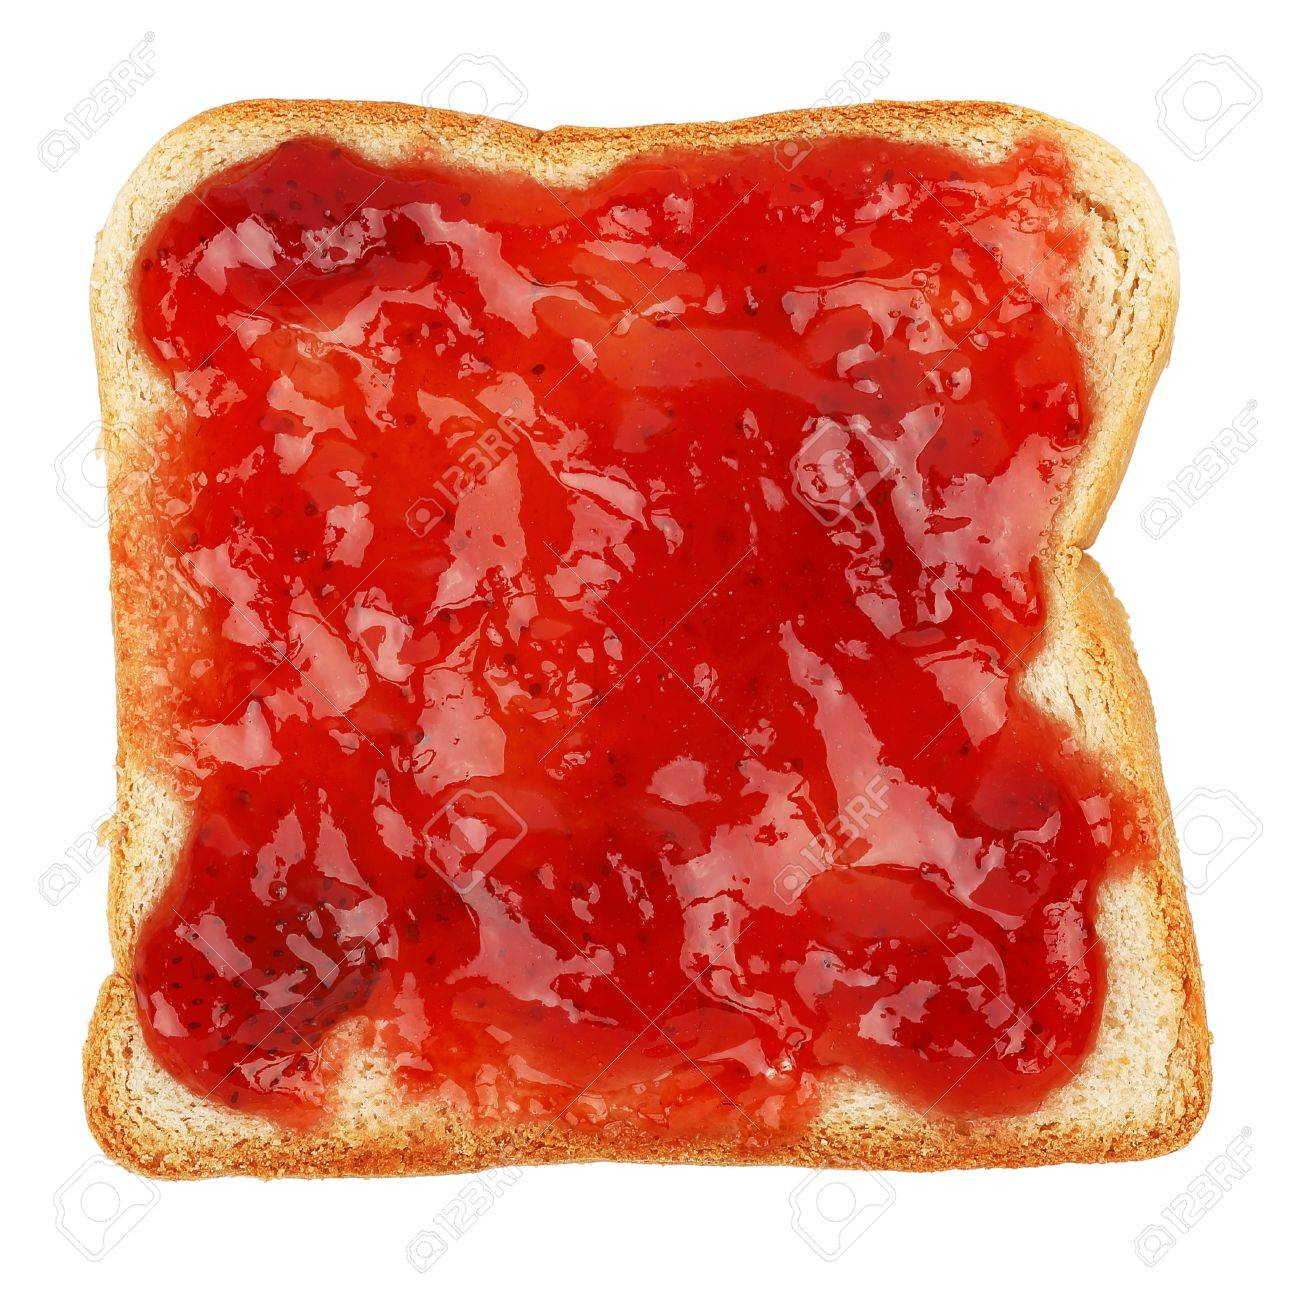 strawberry marmalade on bread slice isolated on white - 45882026